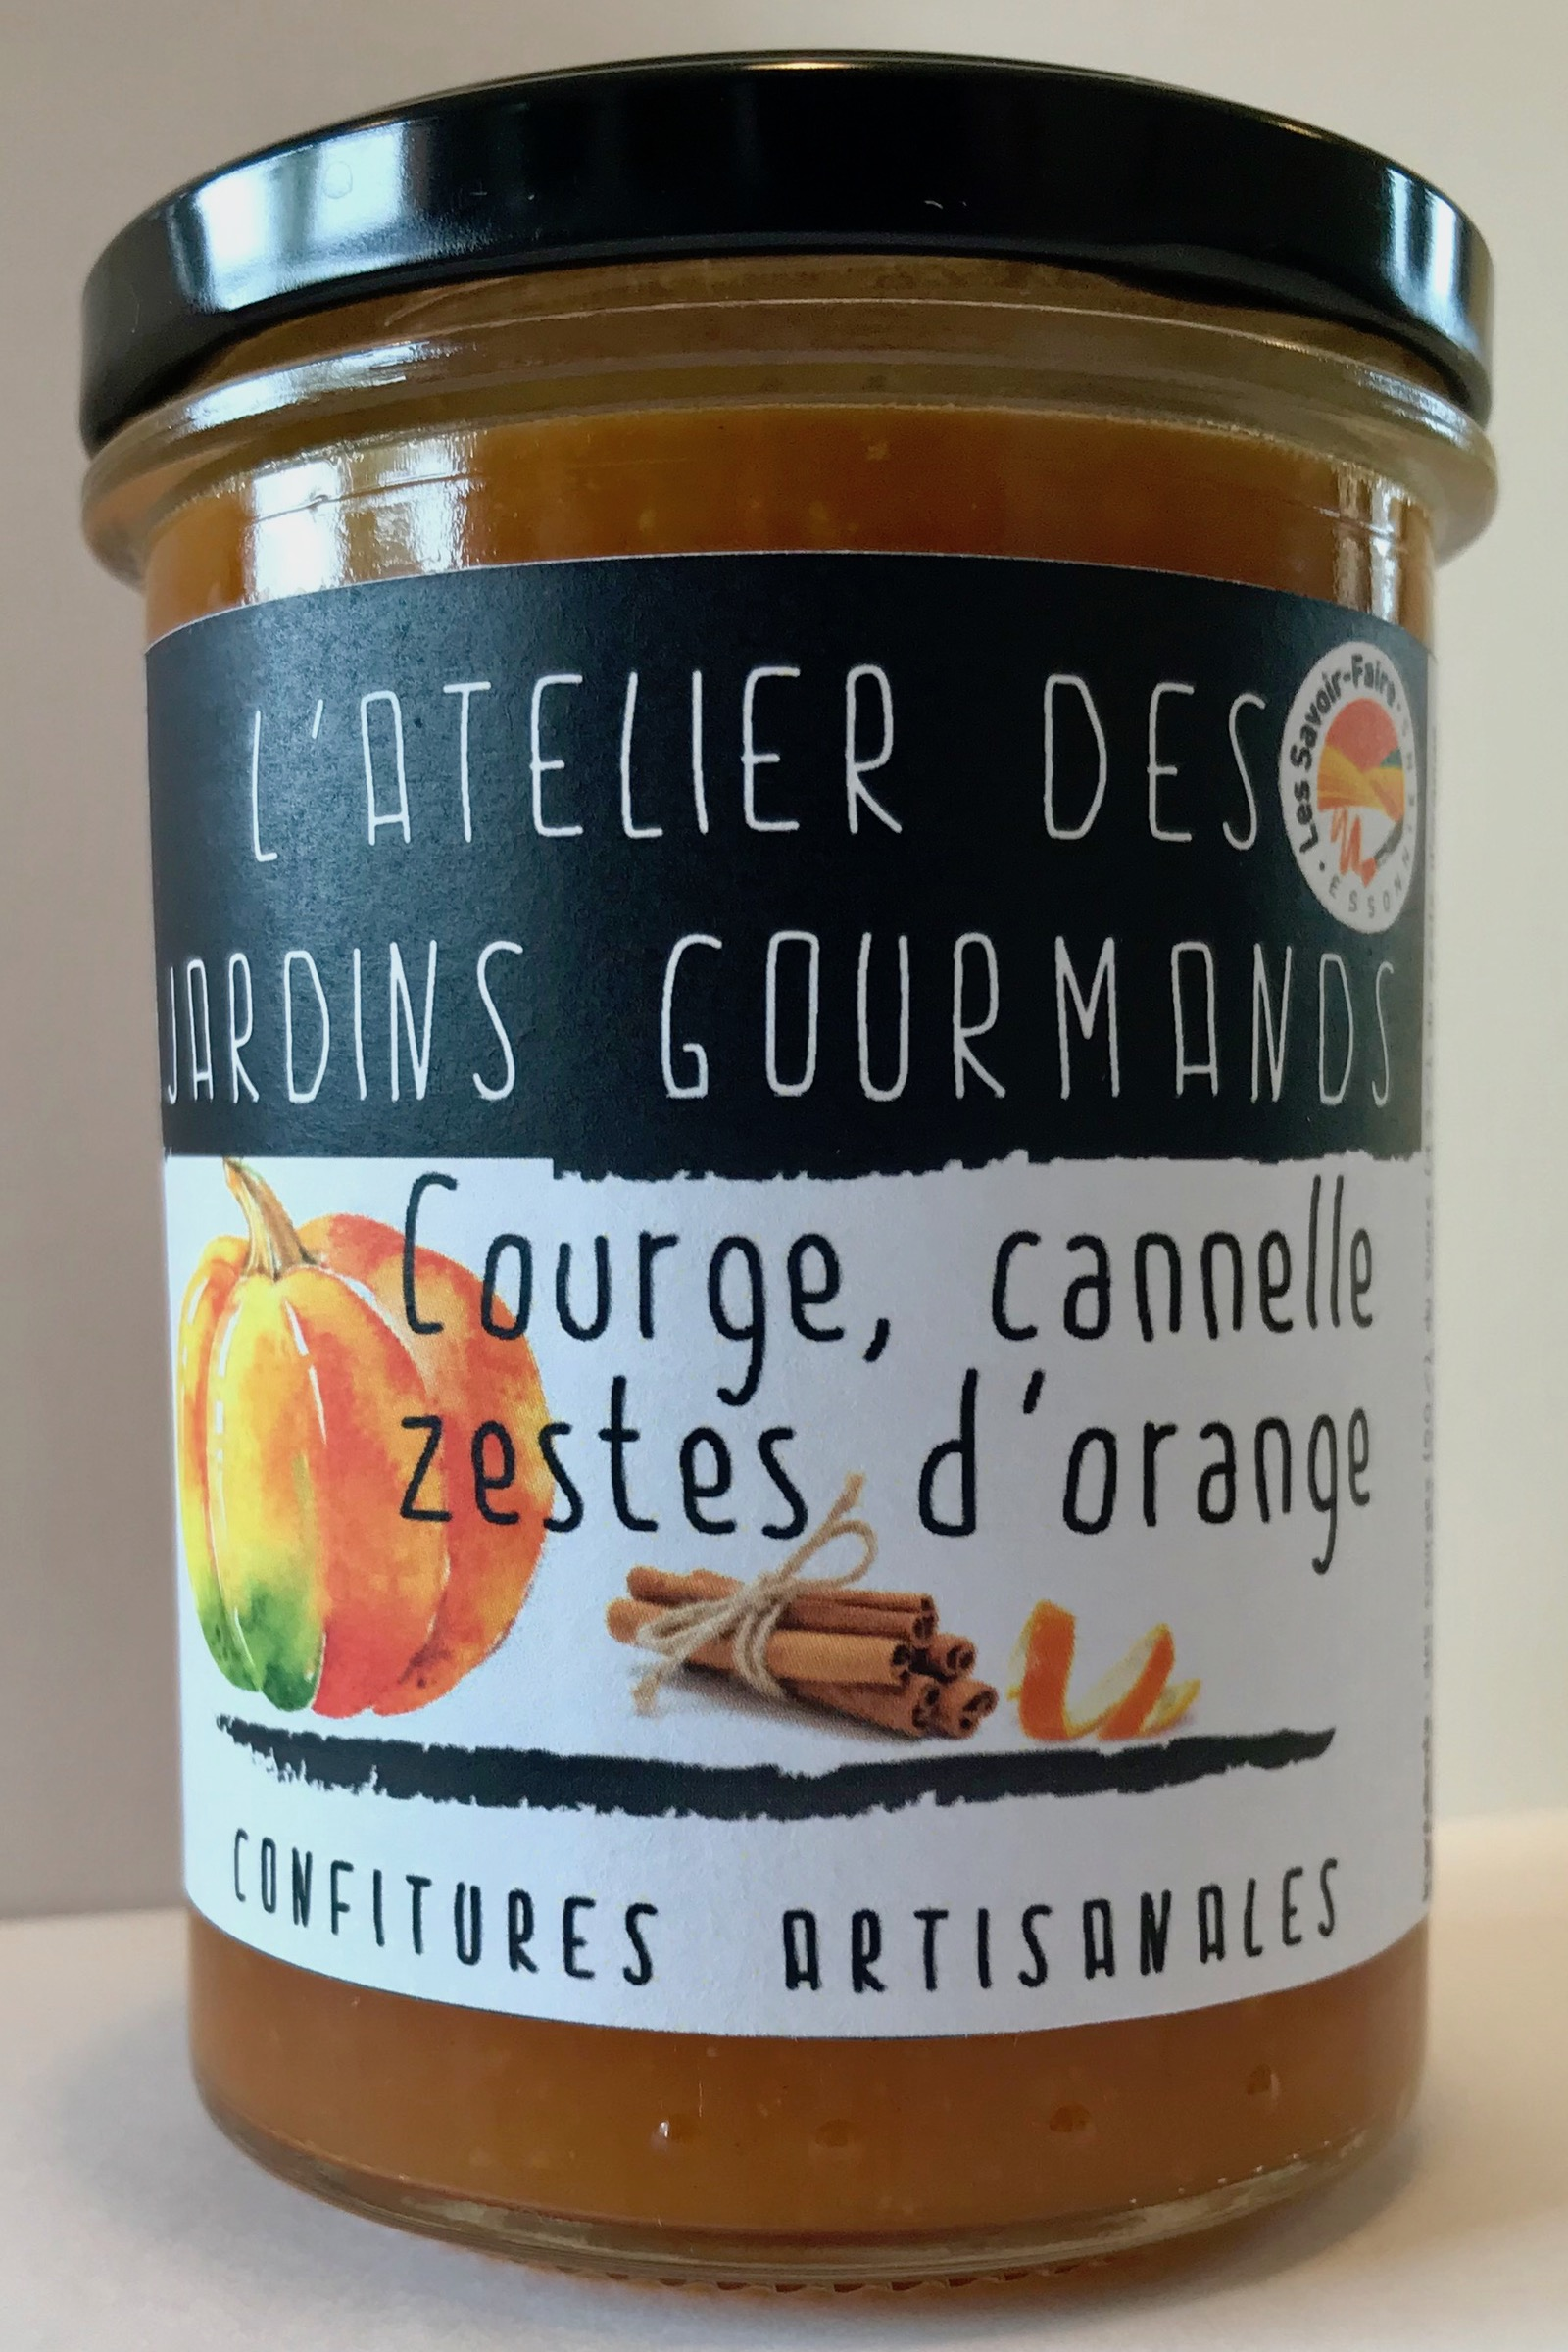 Courge cannelle zeste d'orange atelier des jardins gourmands